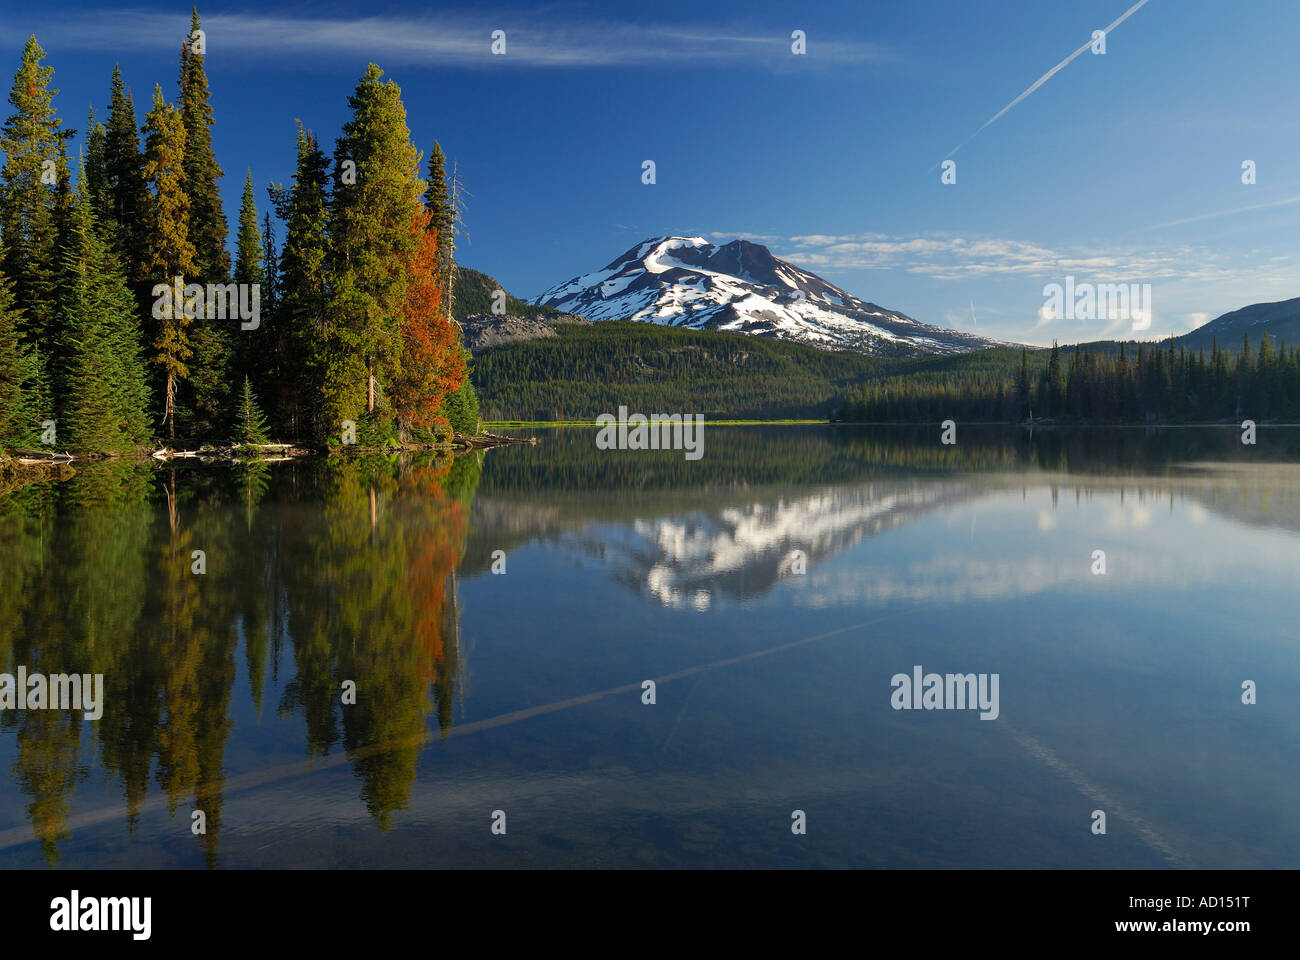 Sunrise on calm Sparks Lake with South Sister and evergreen reflections Deschutes National Forest Bend Oregon - Stock Image